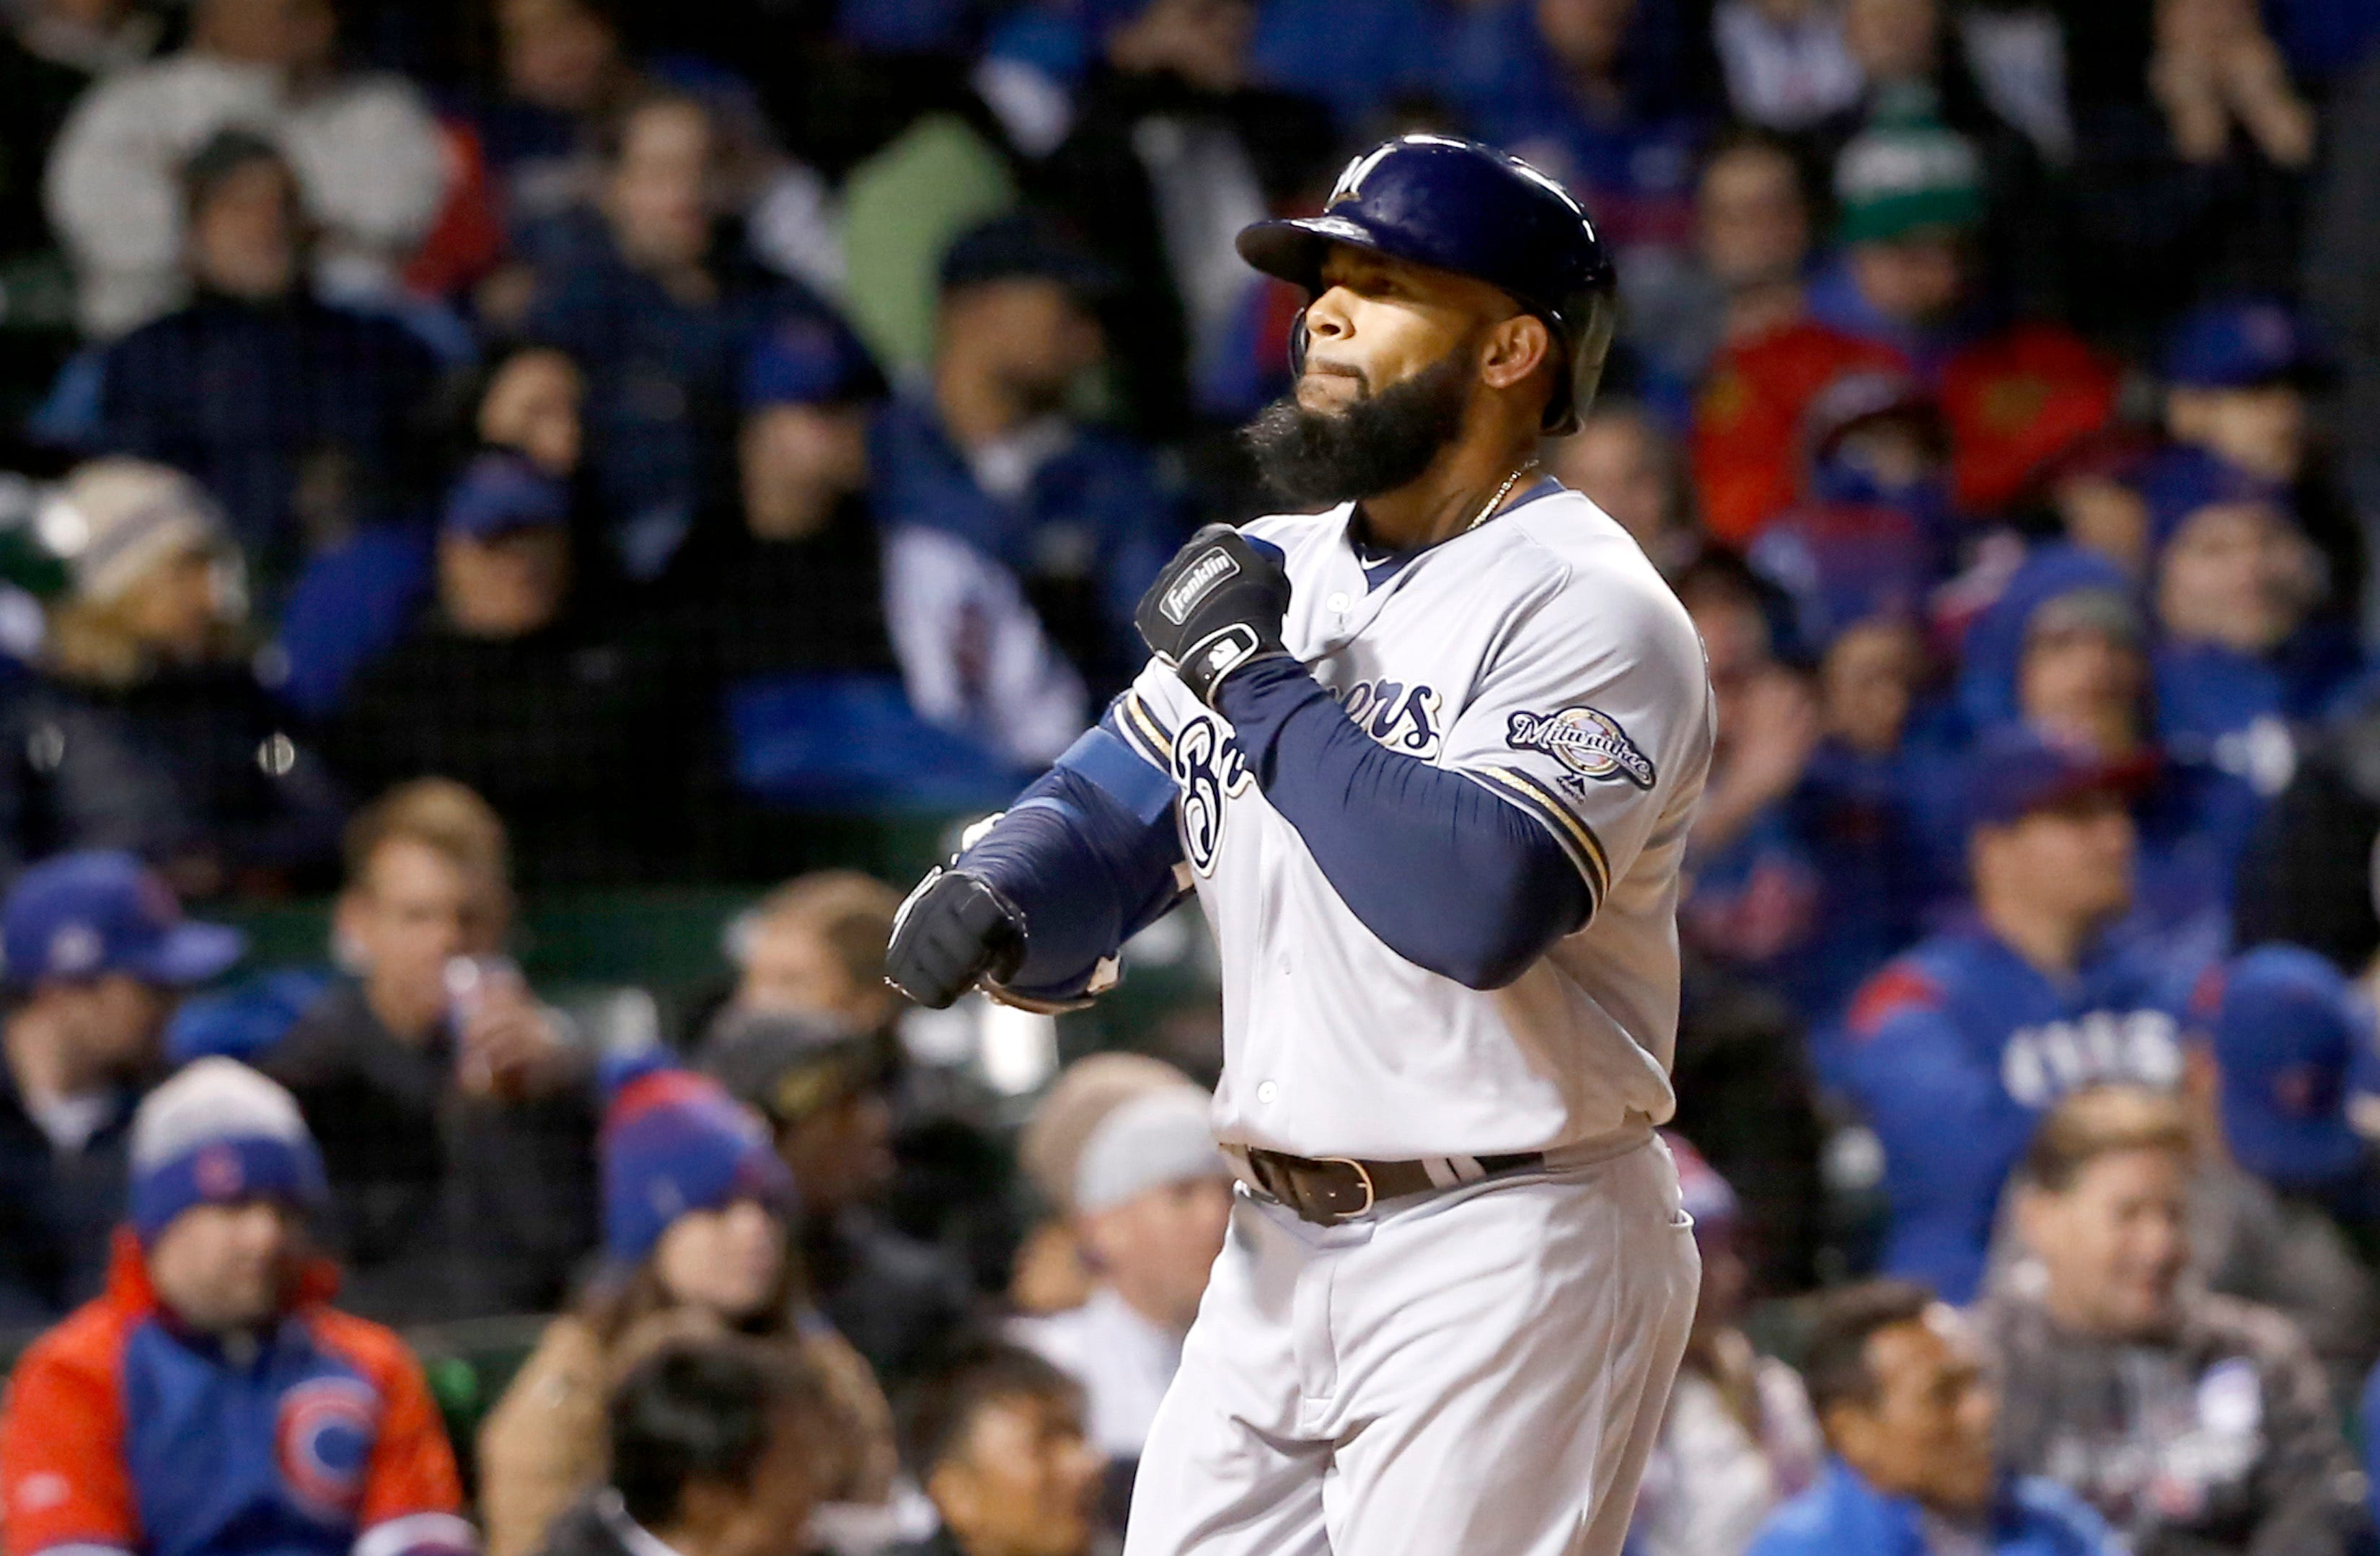 Brewers 6, Cubs 3: Thames powers win